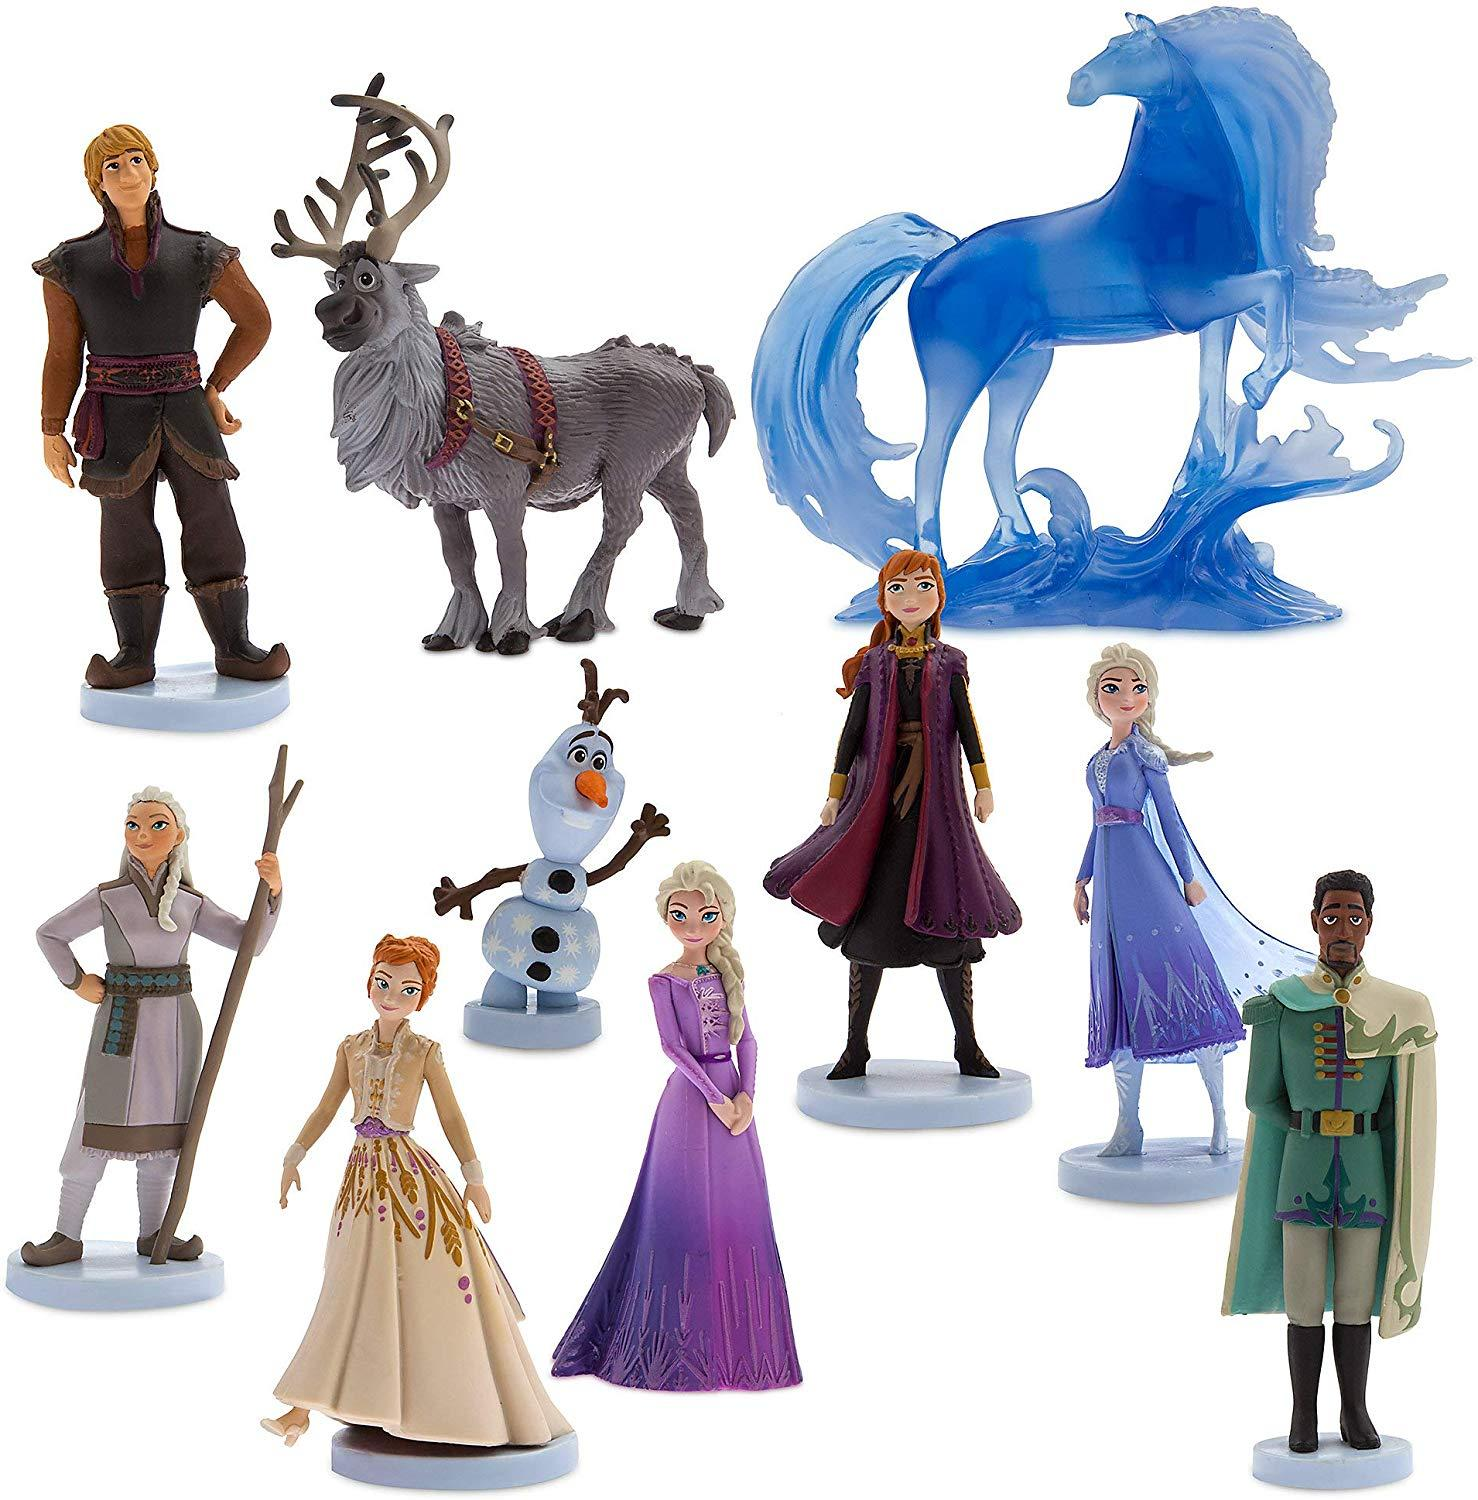 New 1set Disney Frozen 2 Snow Queen Elsa Anna PVC Action Figure Olaf Kristoff Sven Anime Dolls Figurines Kids Toy Children Gift